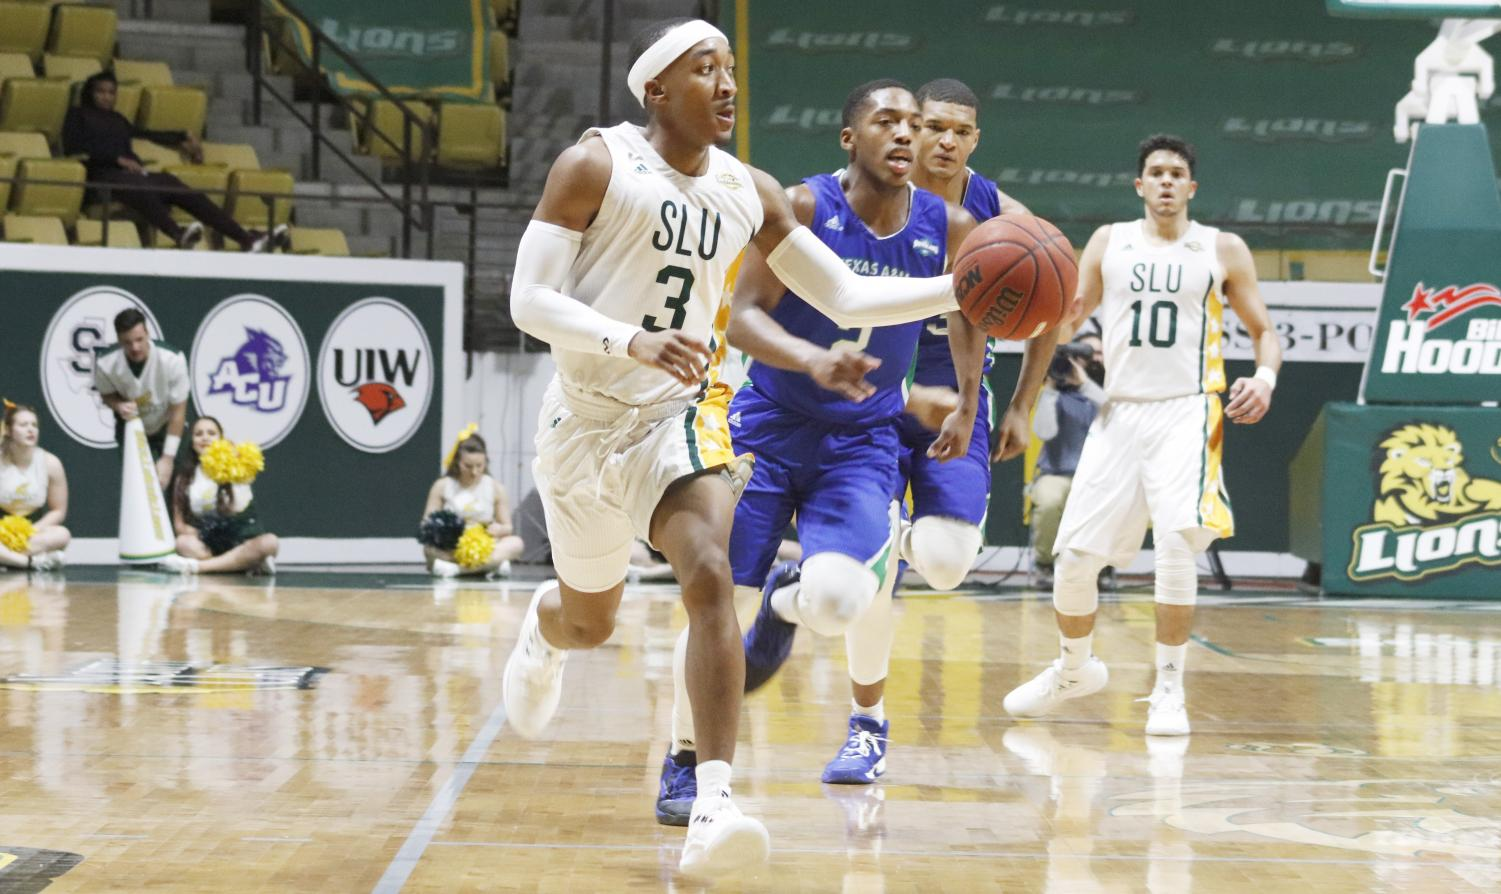 2018 Alumnus Joshua Filmore runs a break against Texas A&M Corpus Christi.